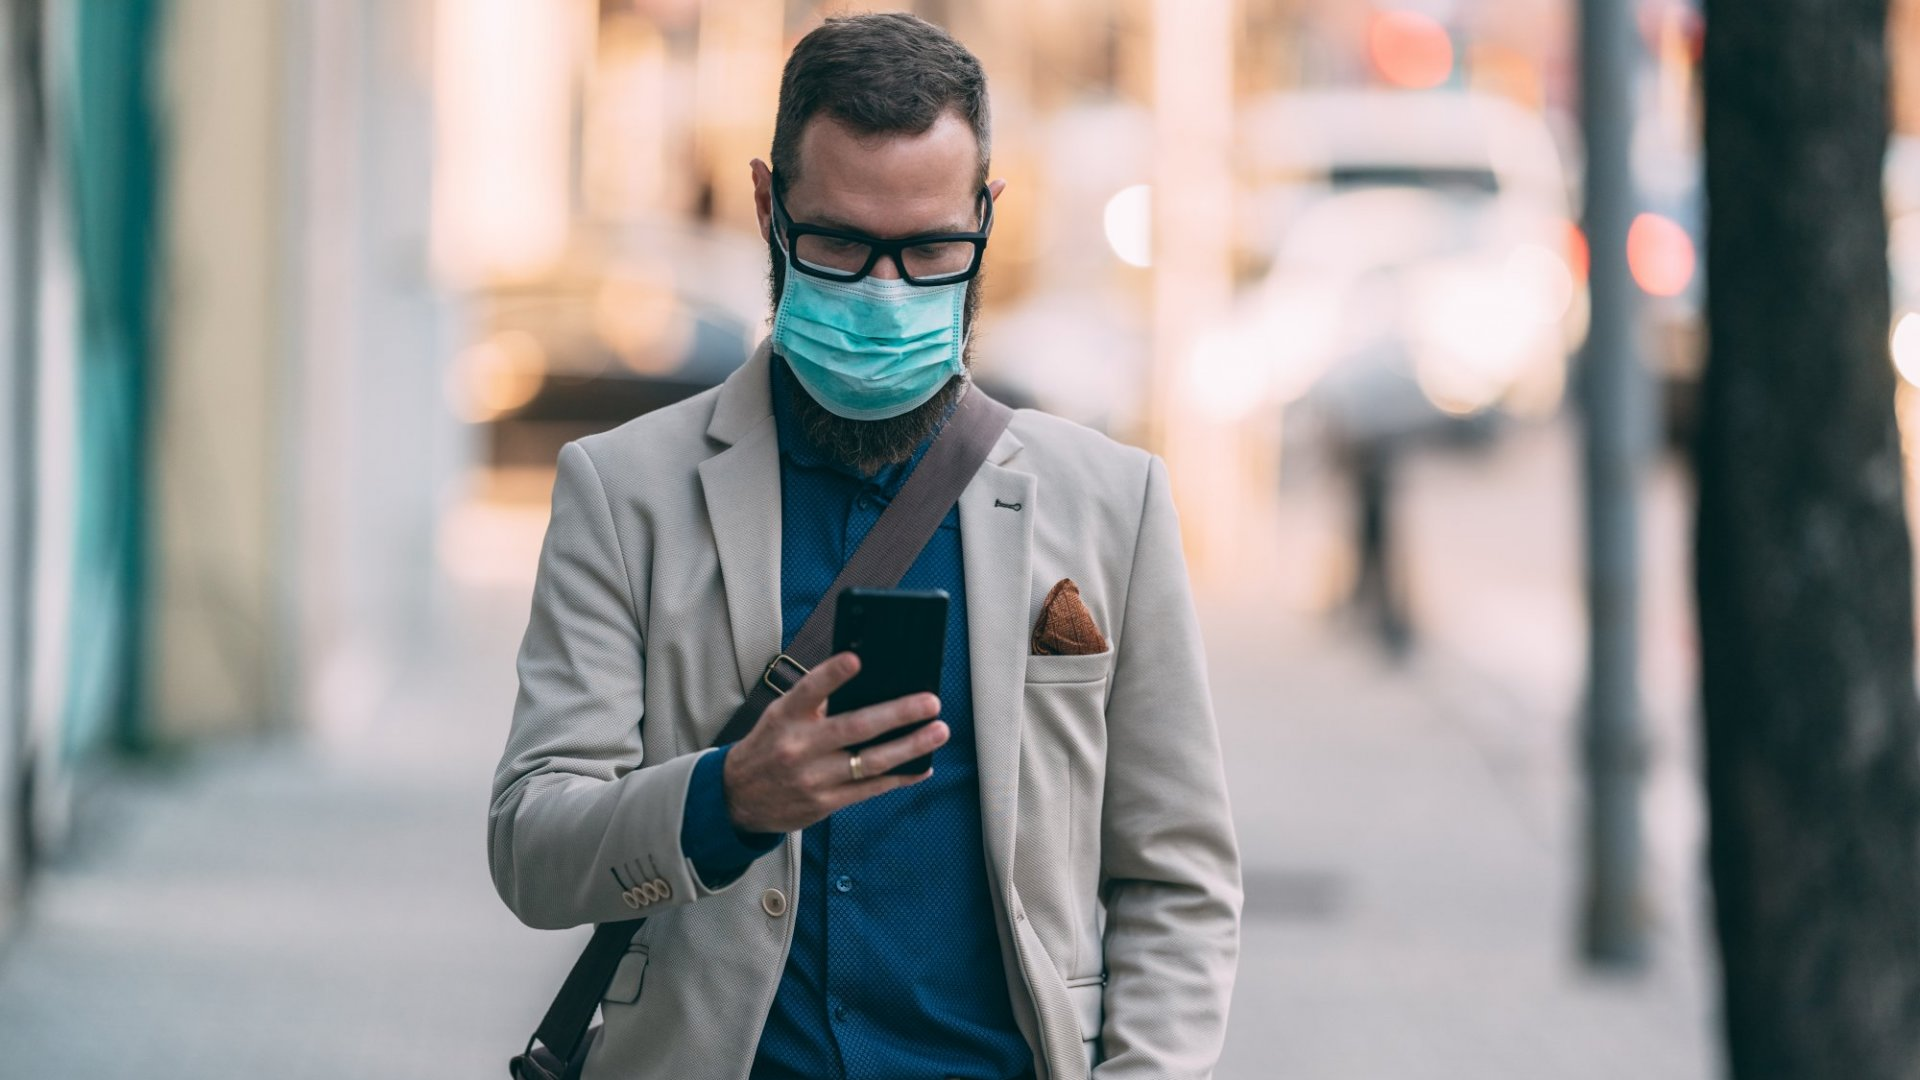 Apple's New iOS Features May Make Pandemic Life Easier